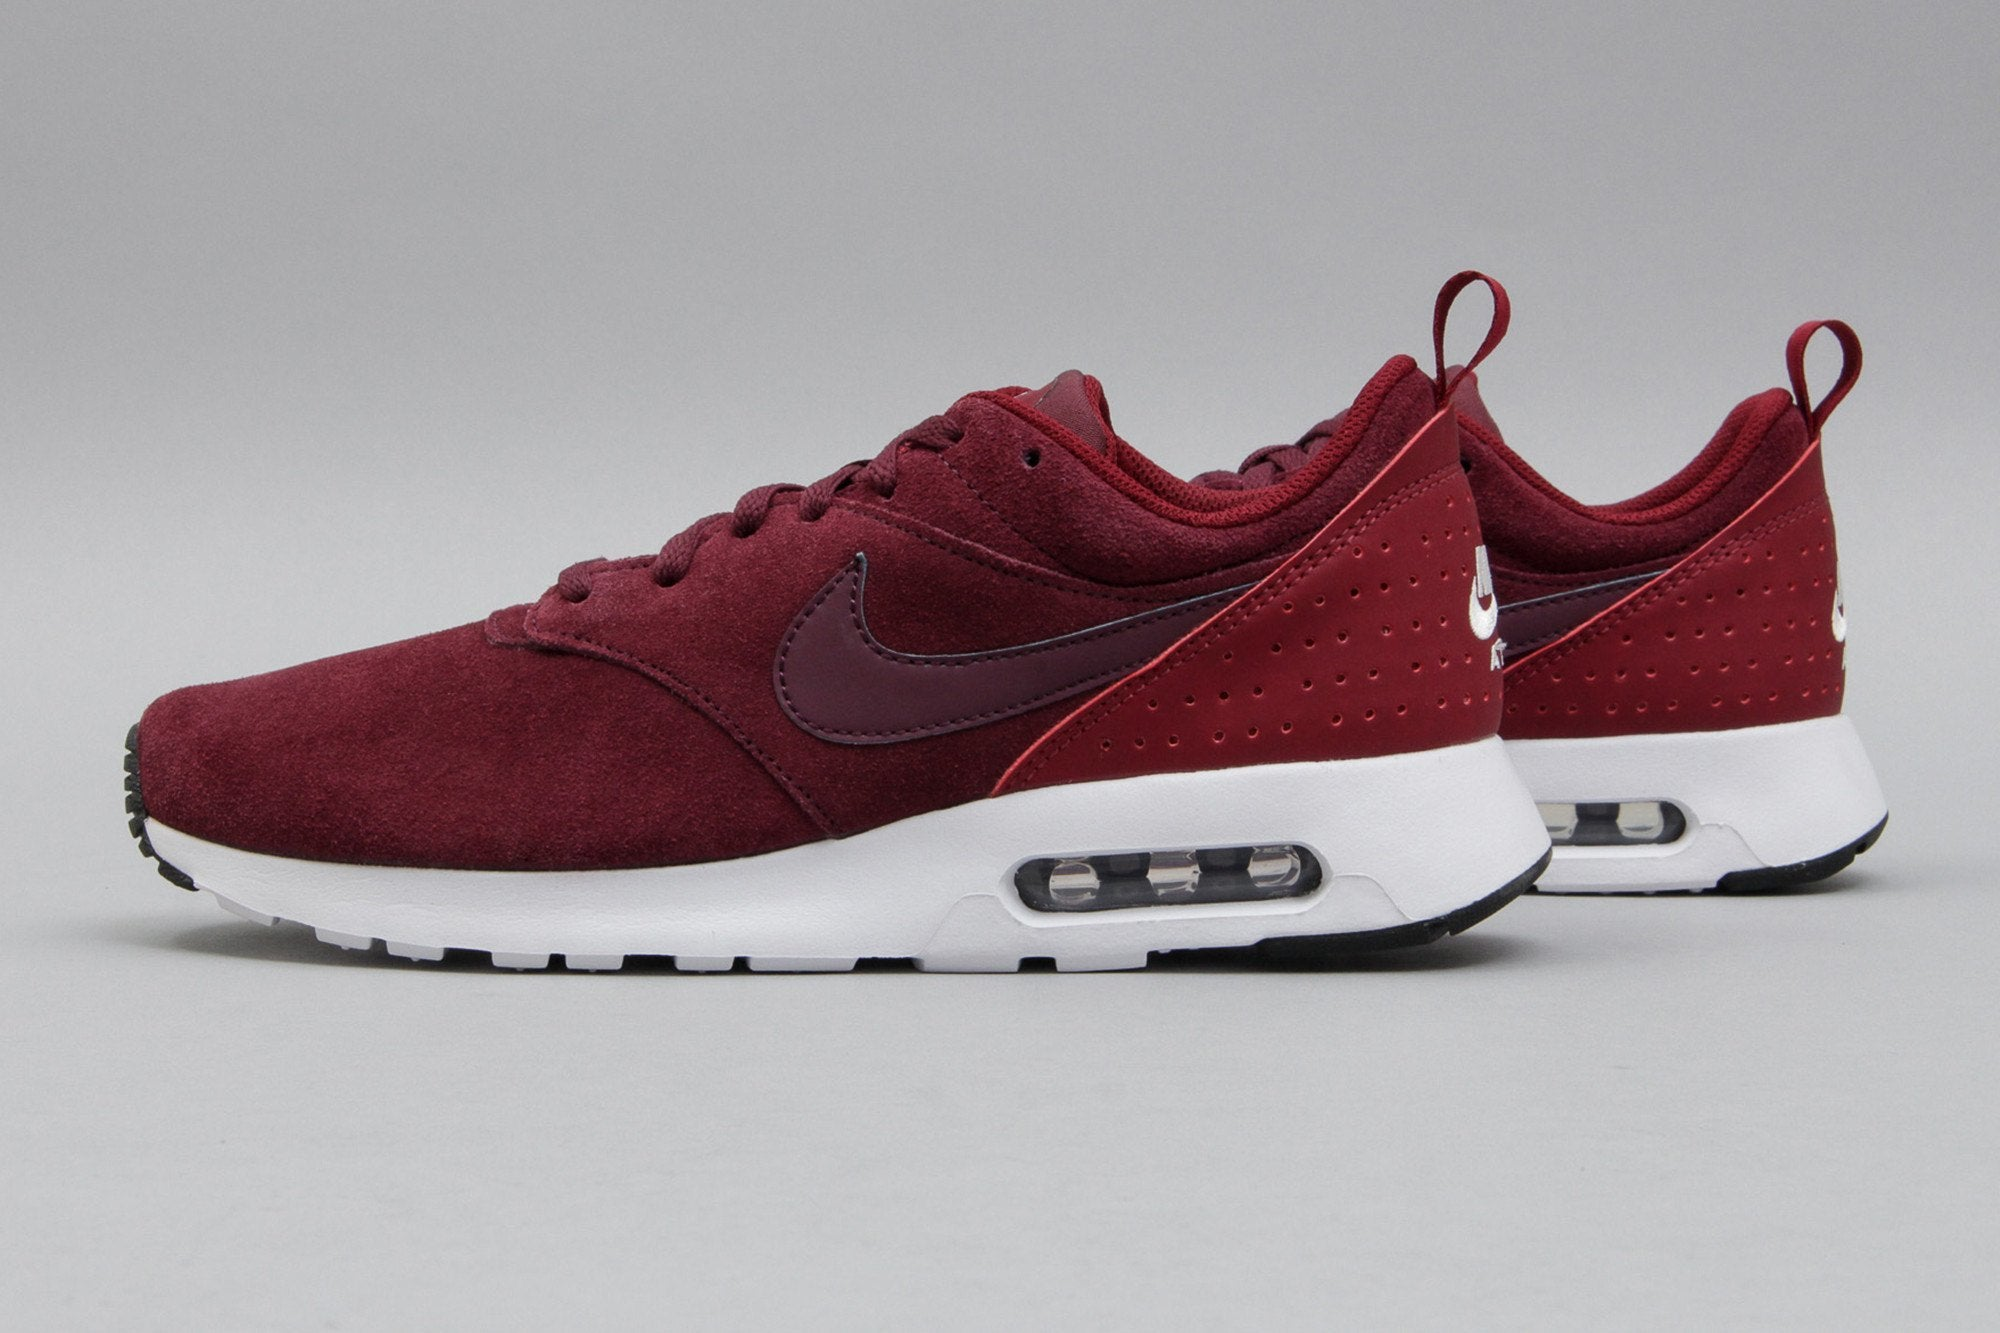 low priced 24993 b68ed nike air max tavas burgundy suede